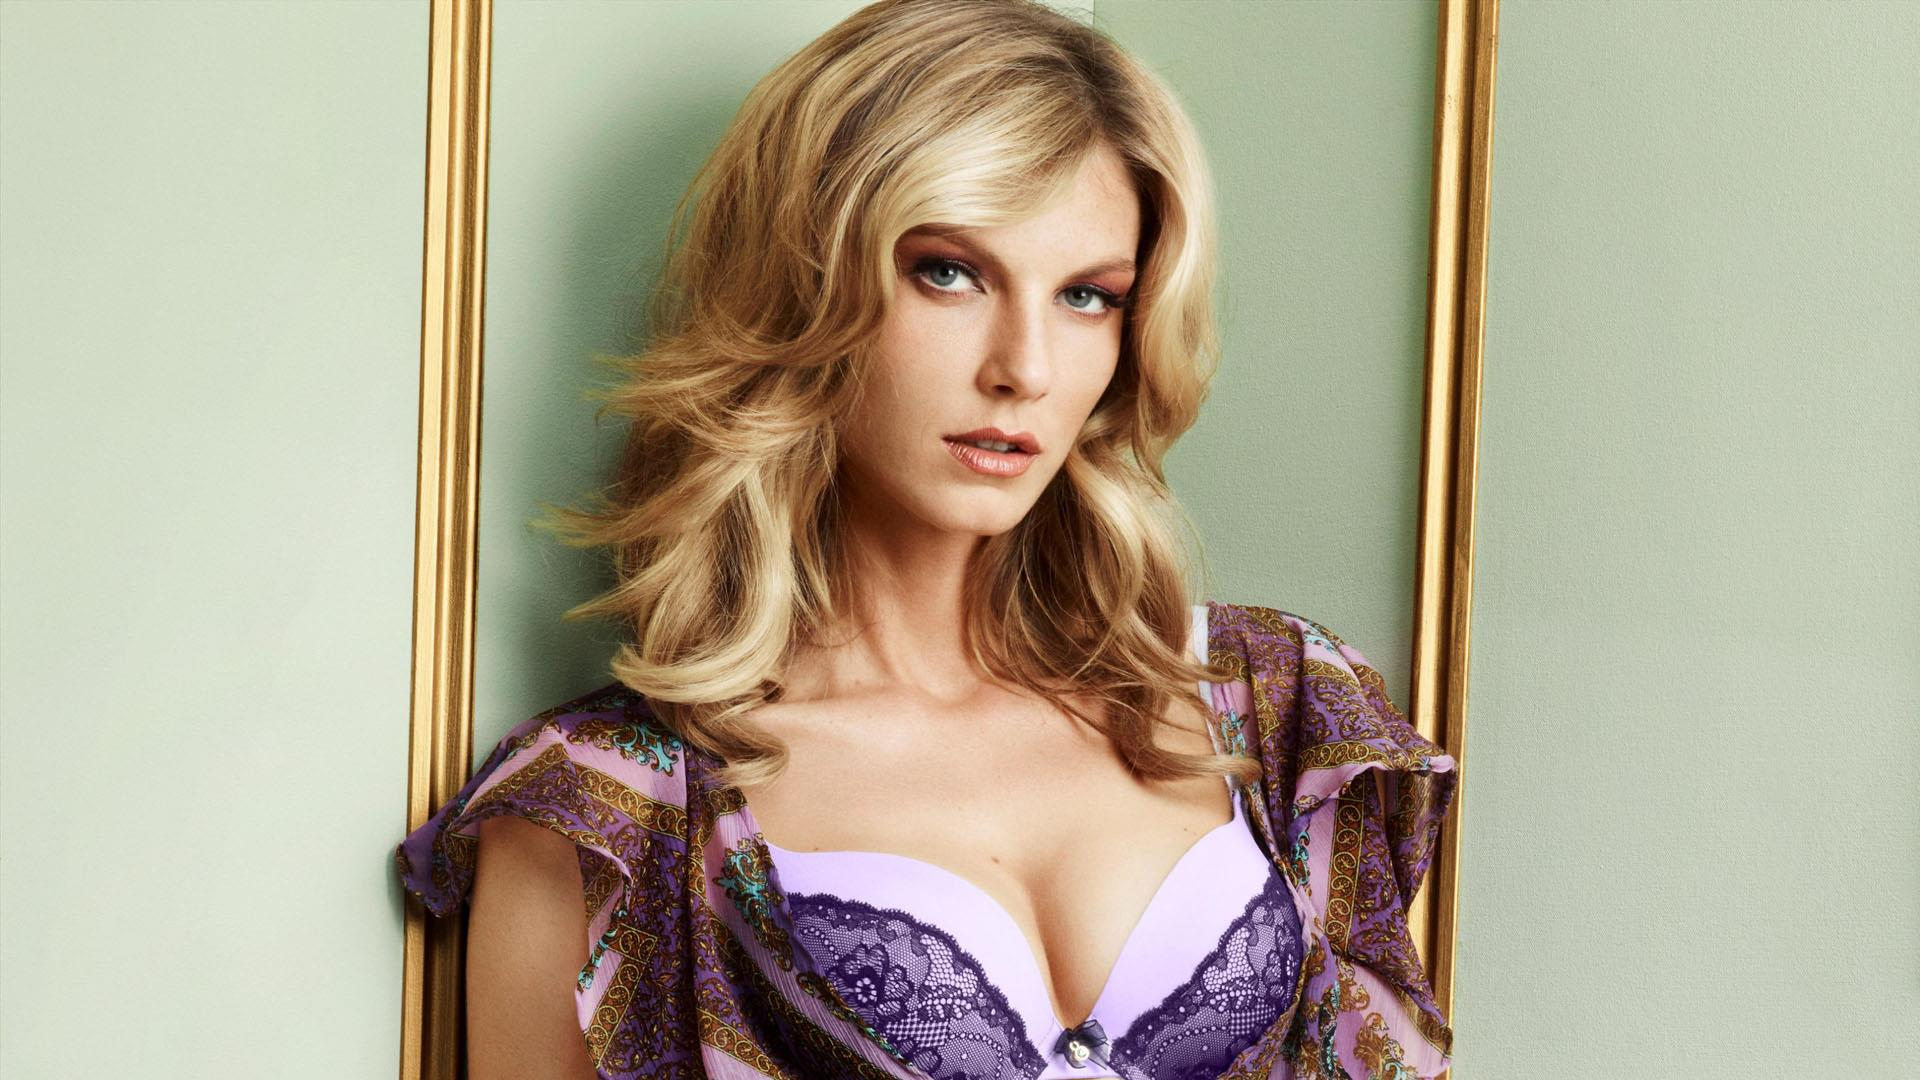 Angela Lindvall earned a  million dollar salary, leaving the net worth at 8 million in 2017